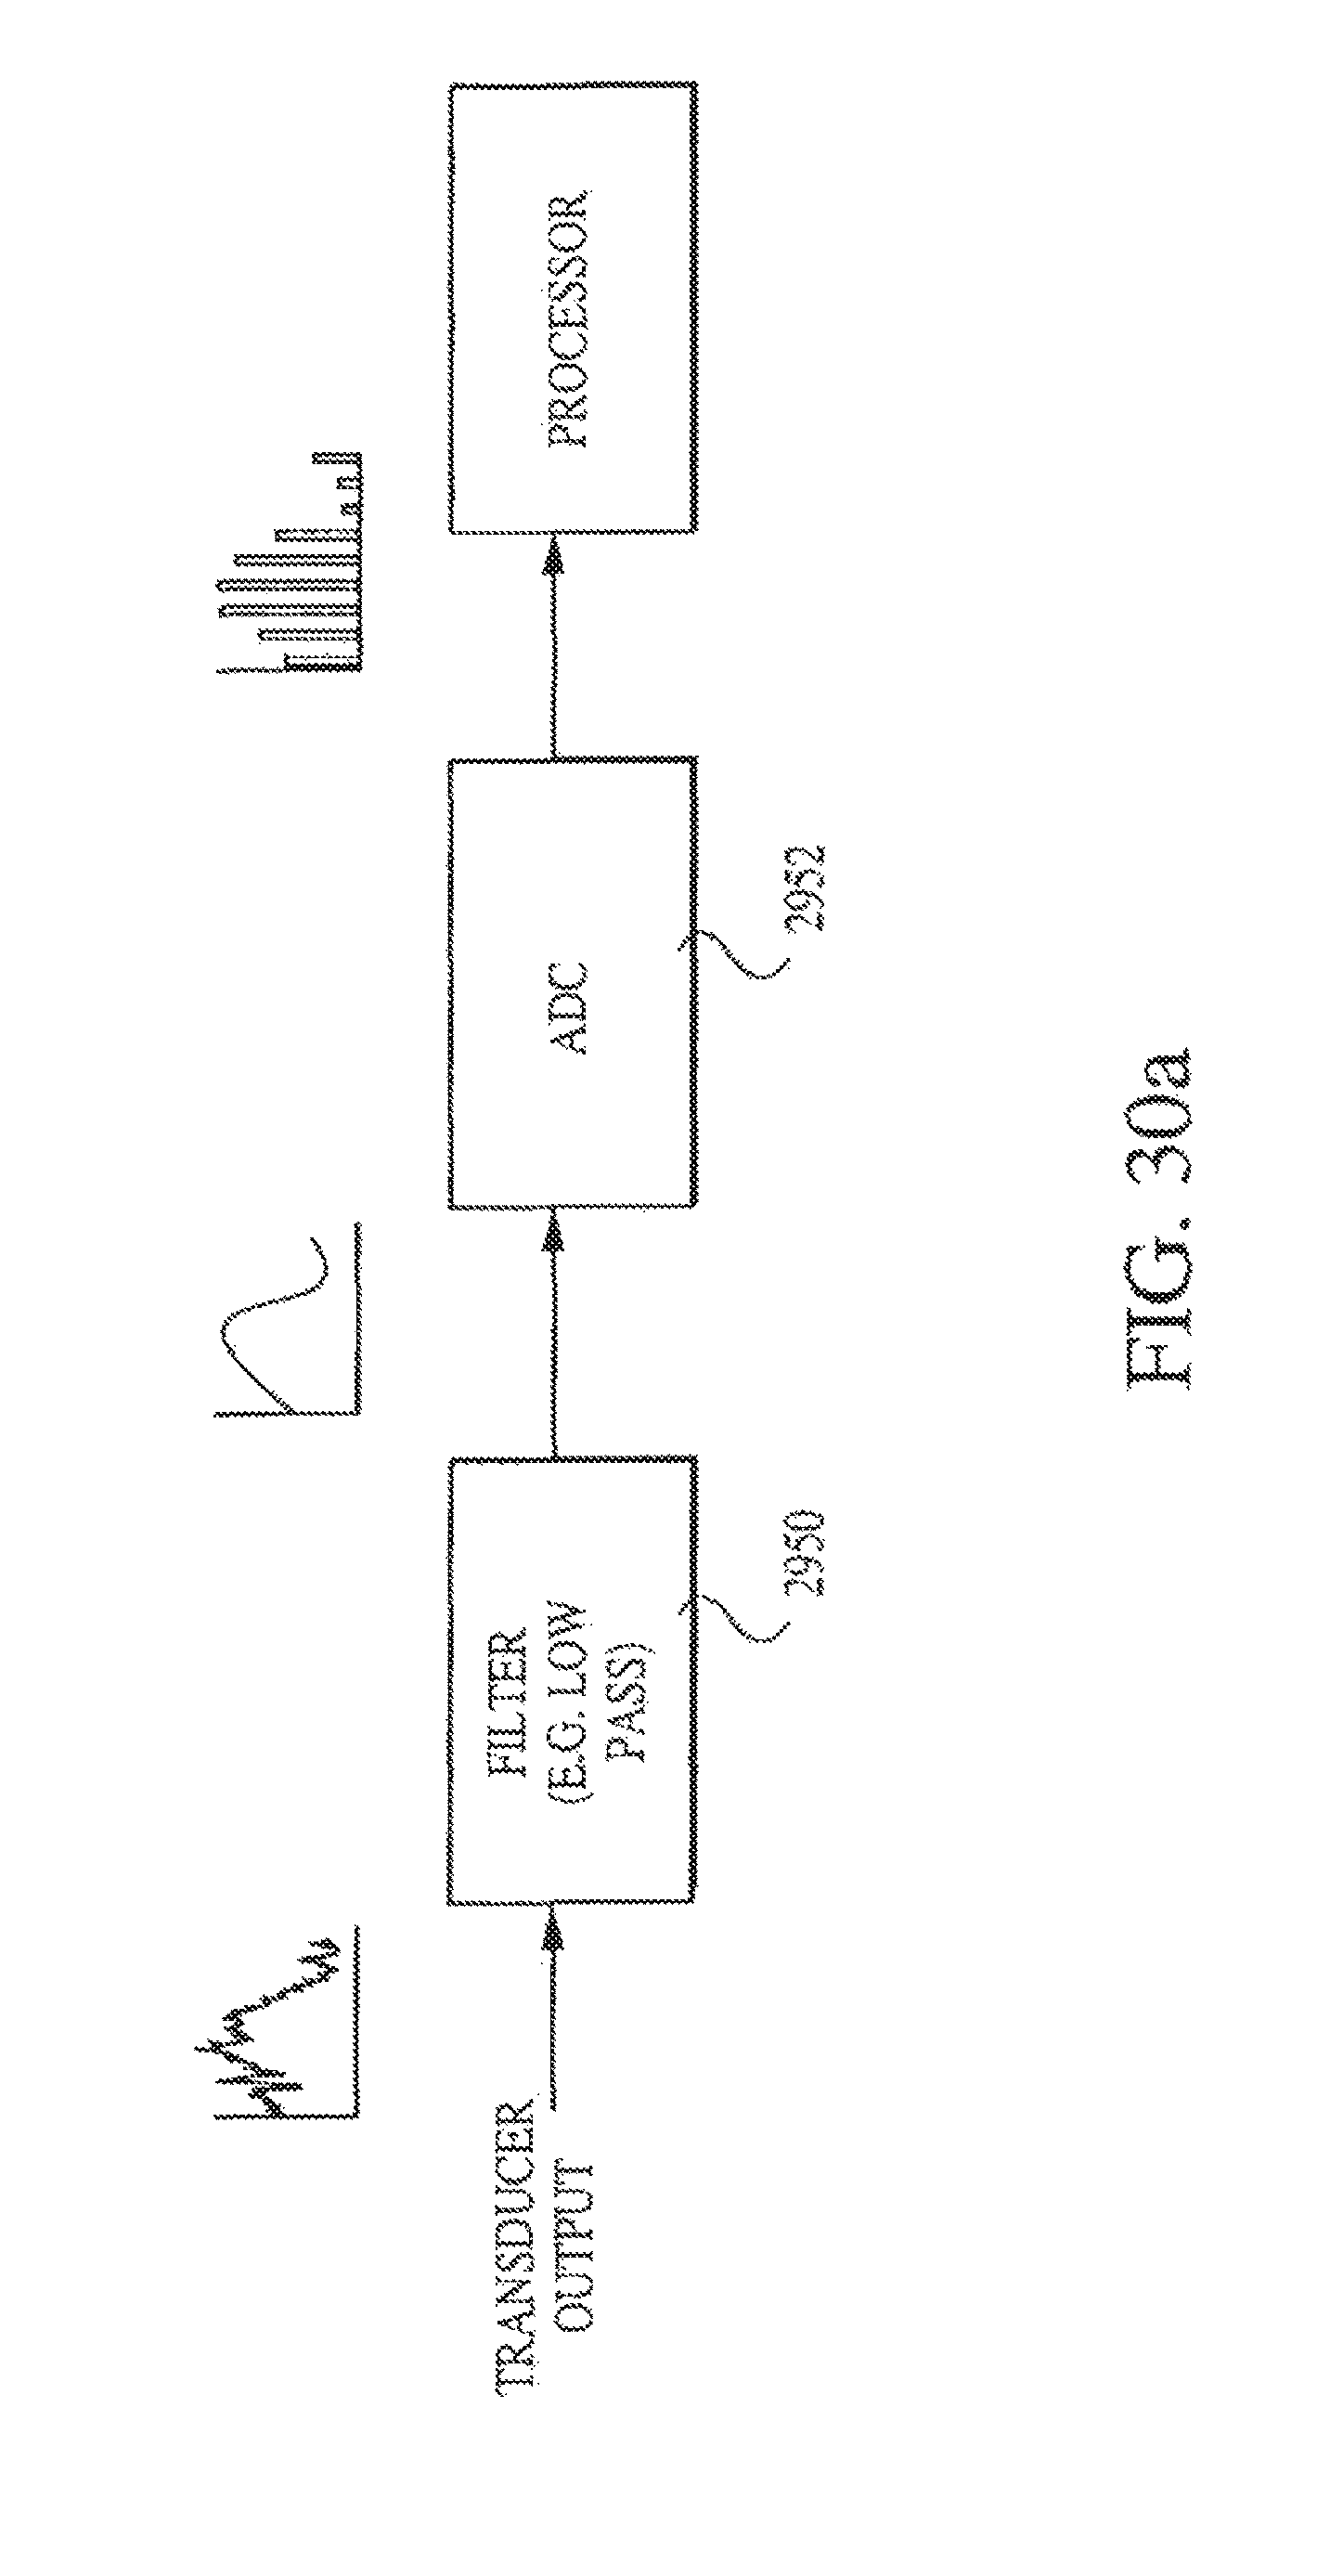 Patent Us 9913575 B2 The Threephase Bridge Rectifier Pop Ntype Filter Circuit Is Shown As Images